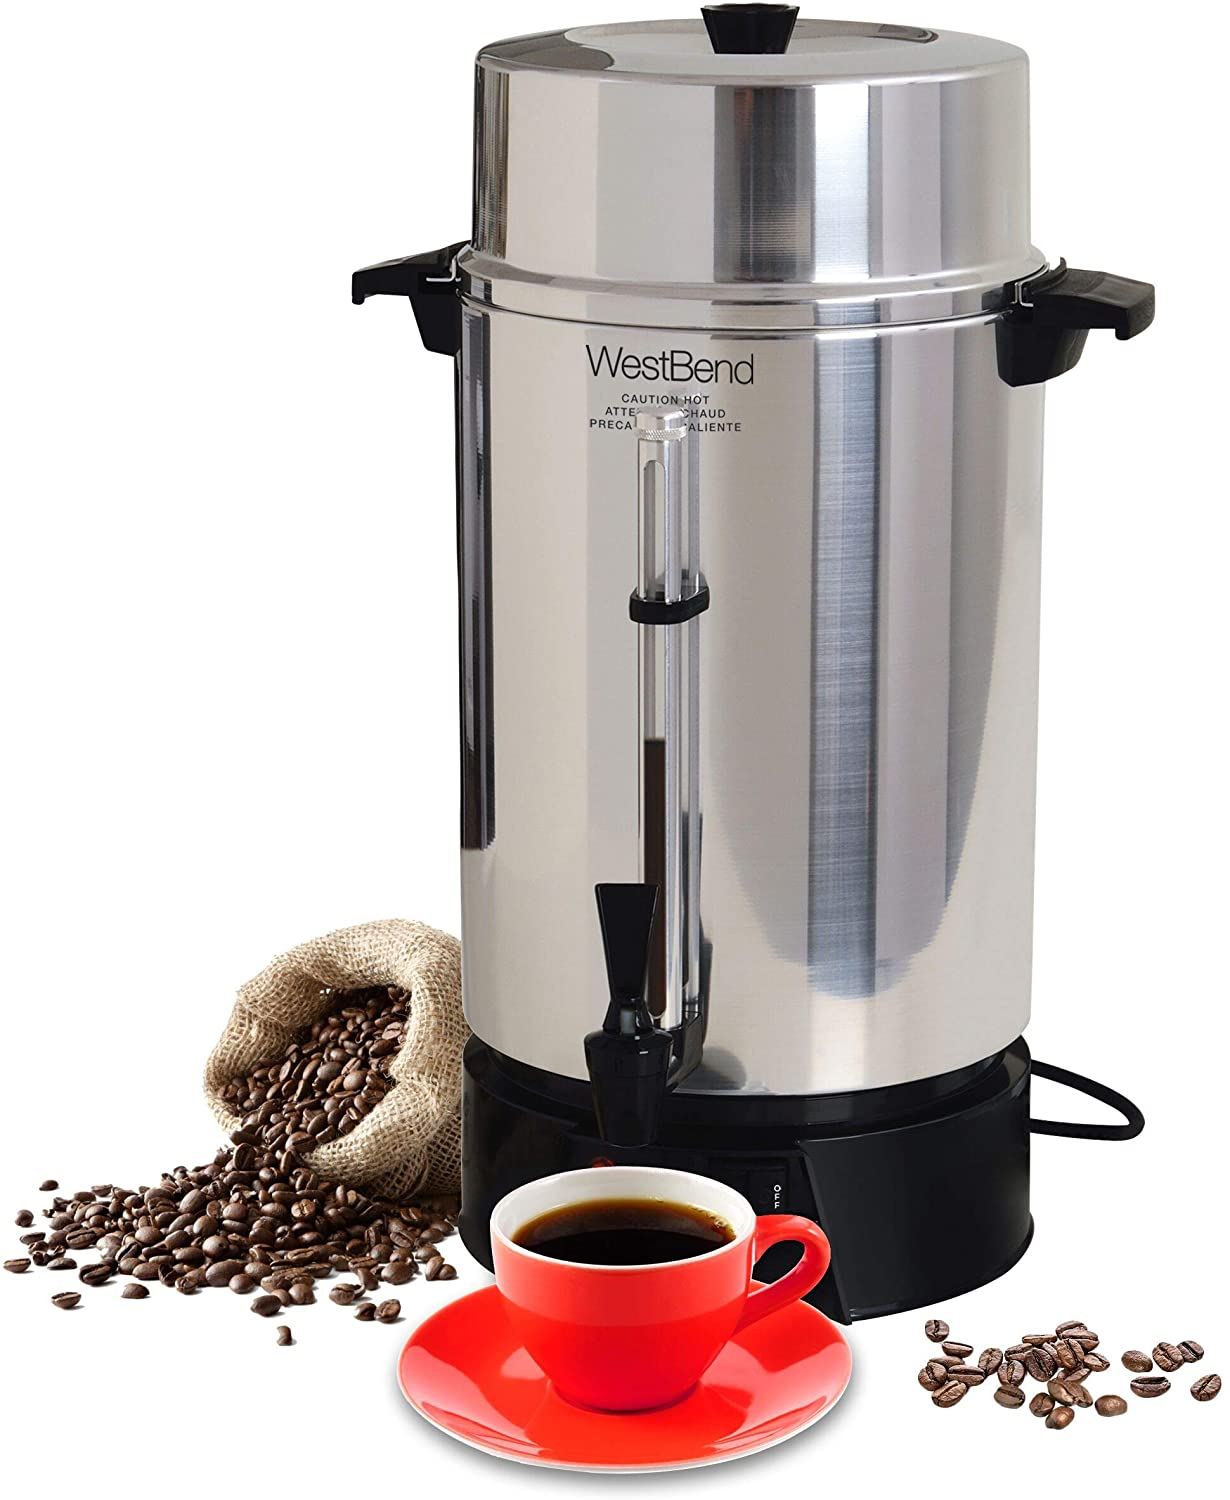 B00004RC6S West Bend 33600 Highly Polished Aluminum Commercial Coffee Urn Features Automatic Temperature Control Large Capacity with Quick Brewing Smooth Prep and Easy Clean Up, 100-Cup, Silver 8193vnB1R8L